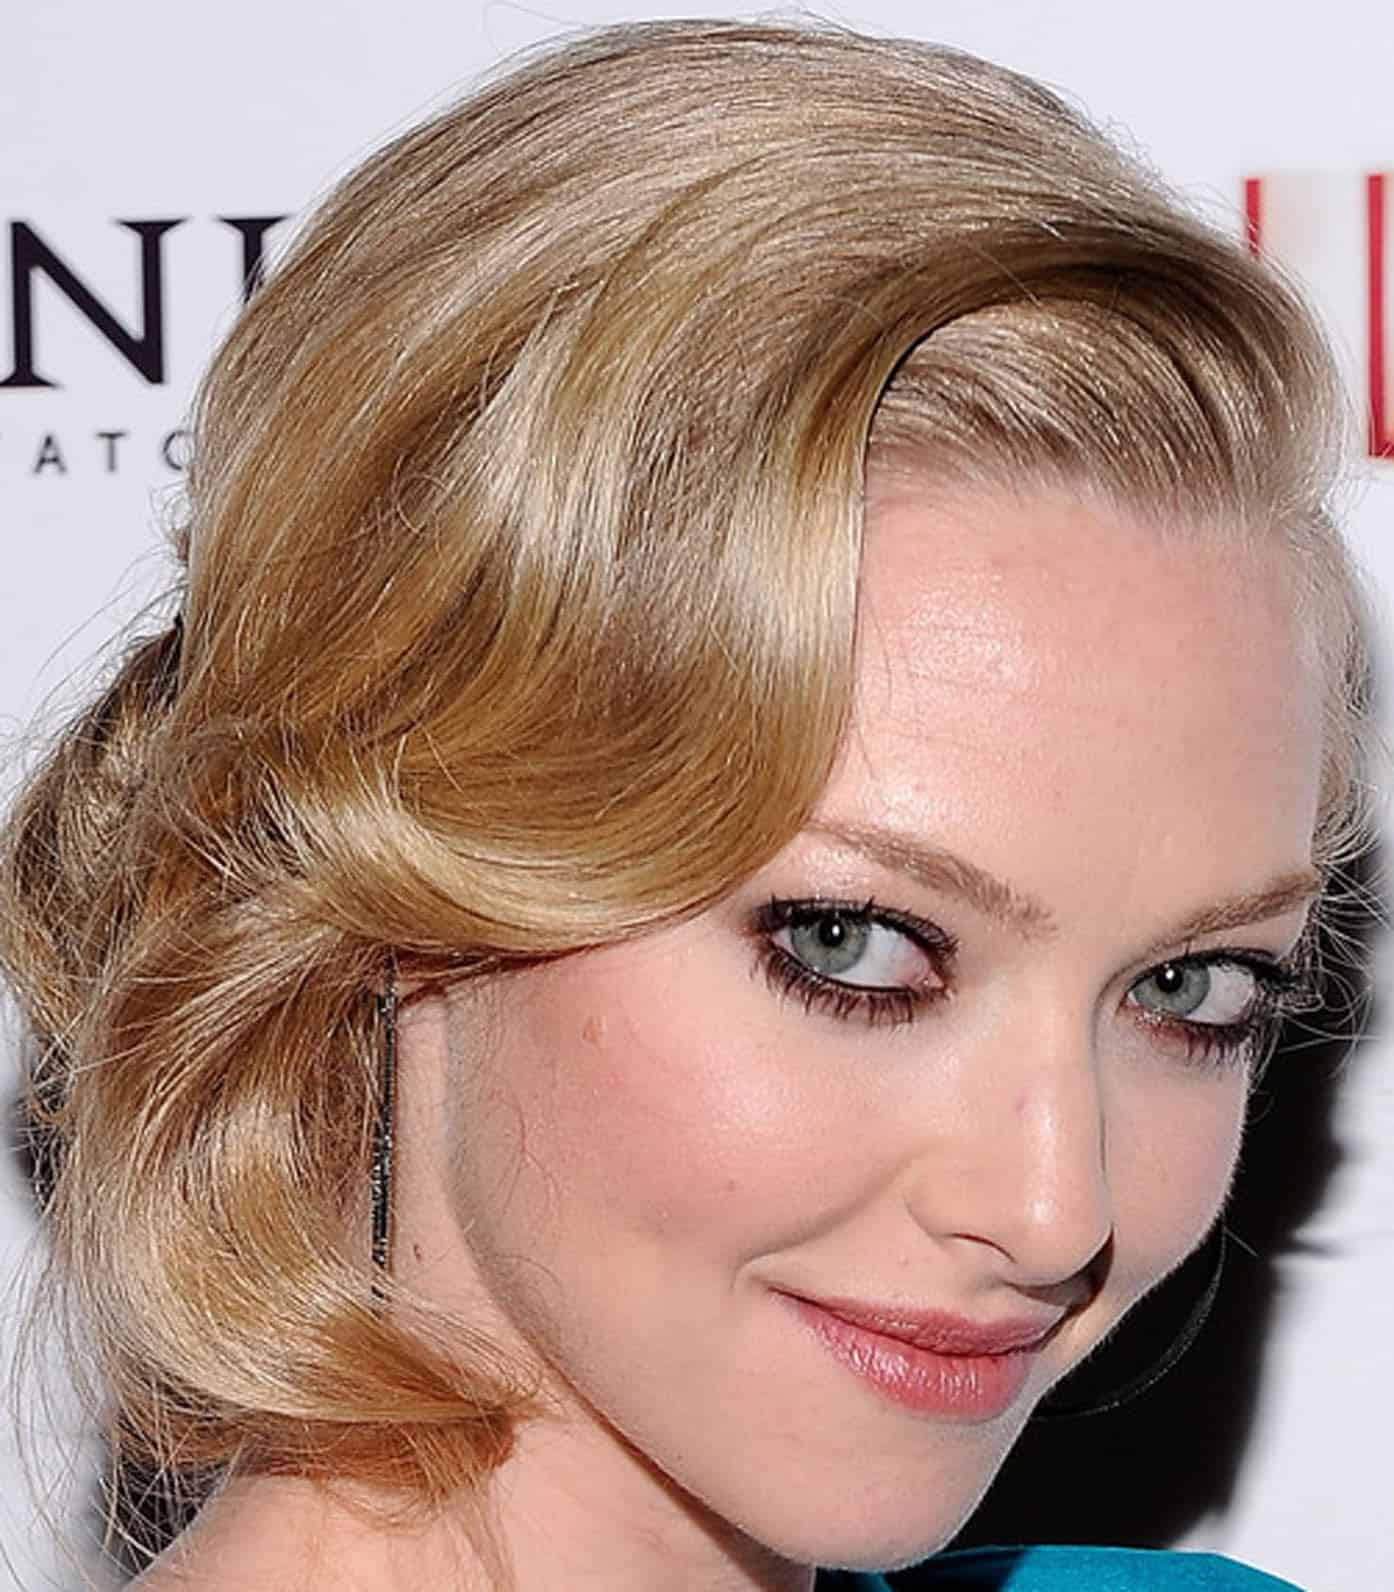 Retro hairstyles for short hair blonde women